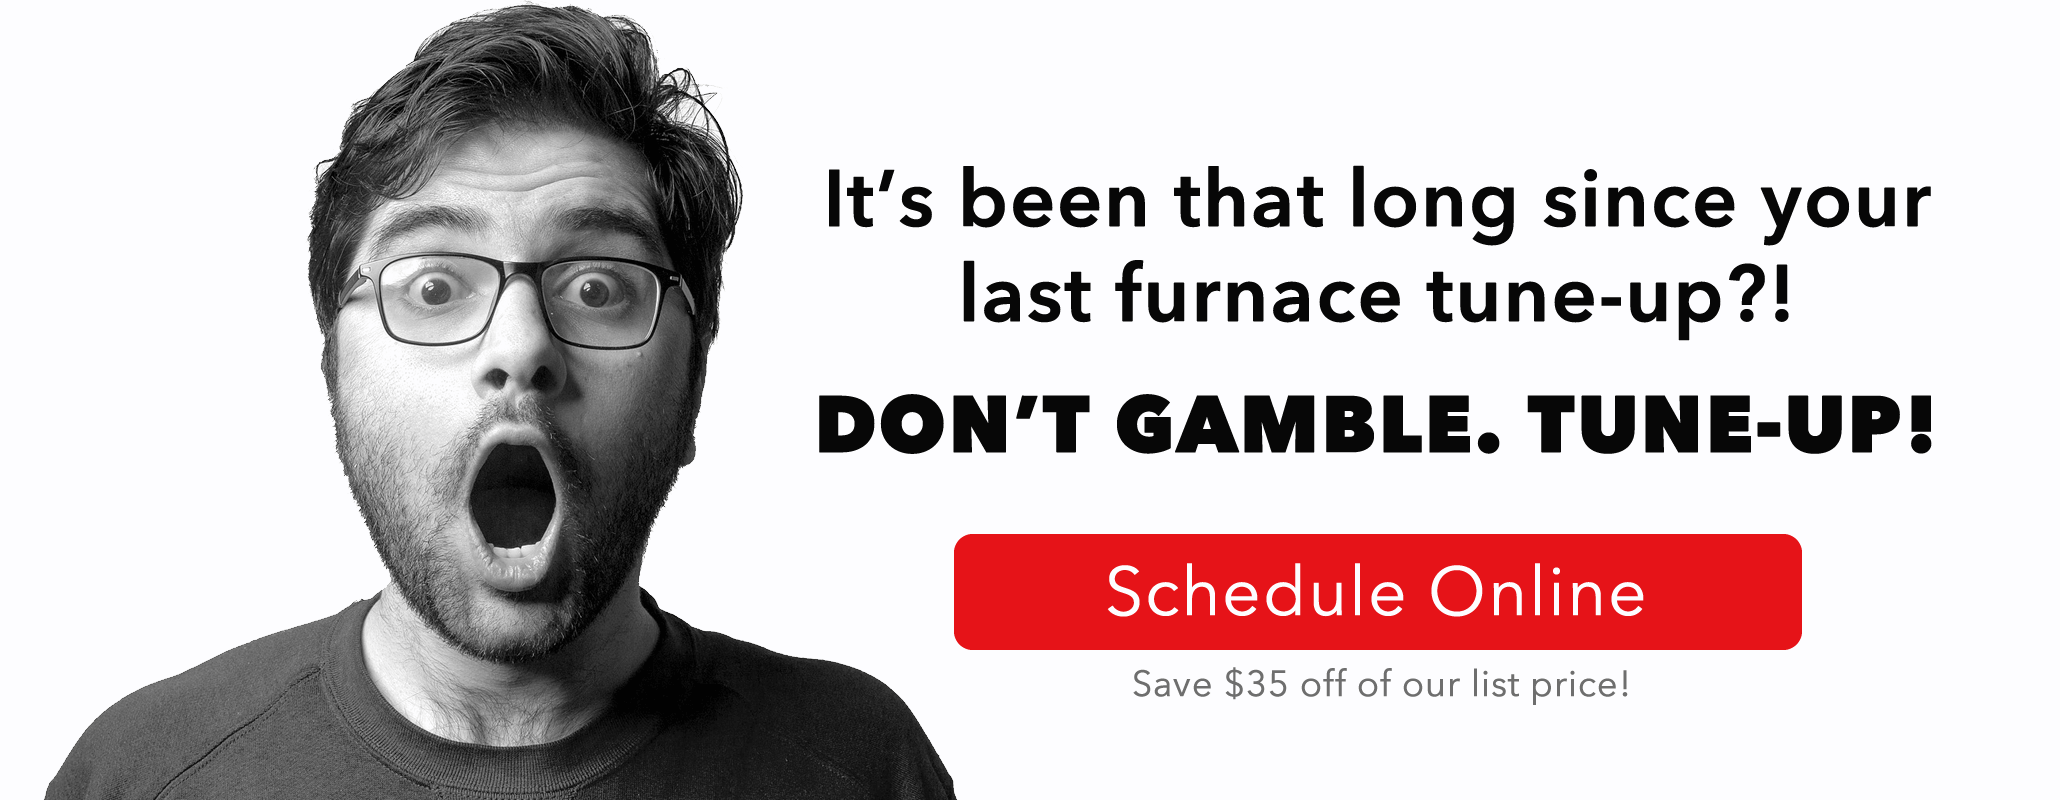 It's been that long since your last furnace tune-up?! Don't Gamble. Tune-Up! Schedule online and save $35 off of our list price.